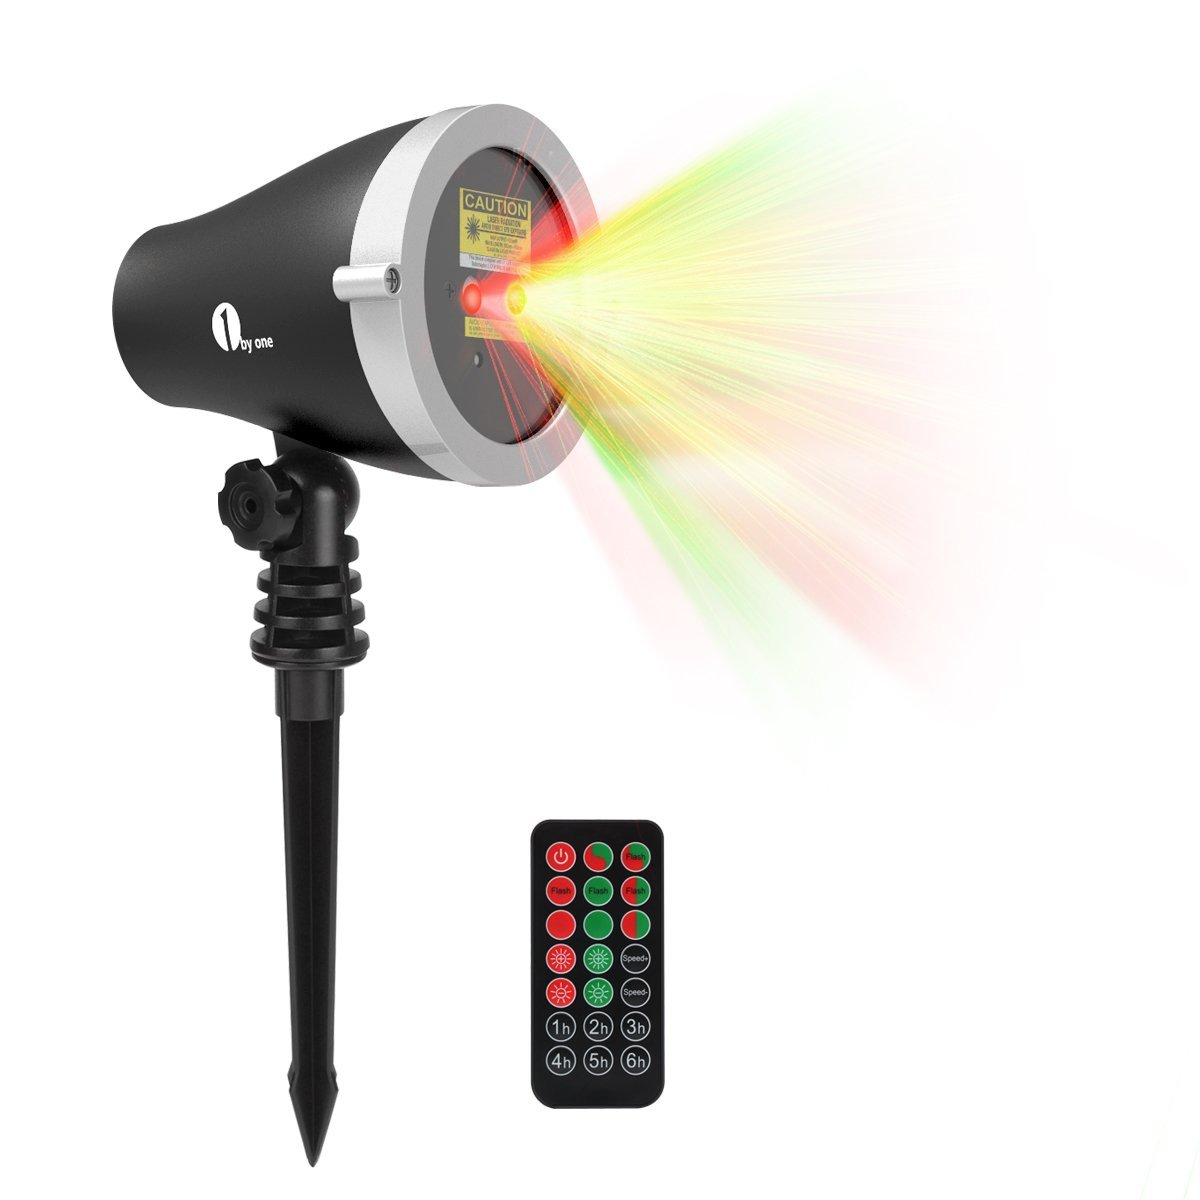 1 1byone Aluminum Alloy Outdoor Laser Christmas Light Projector